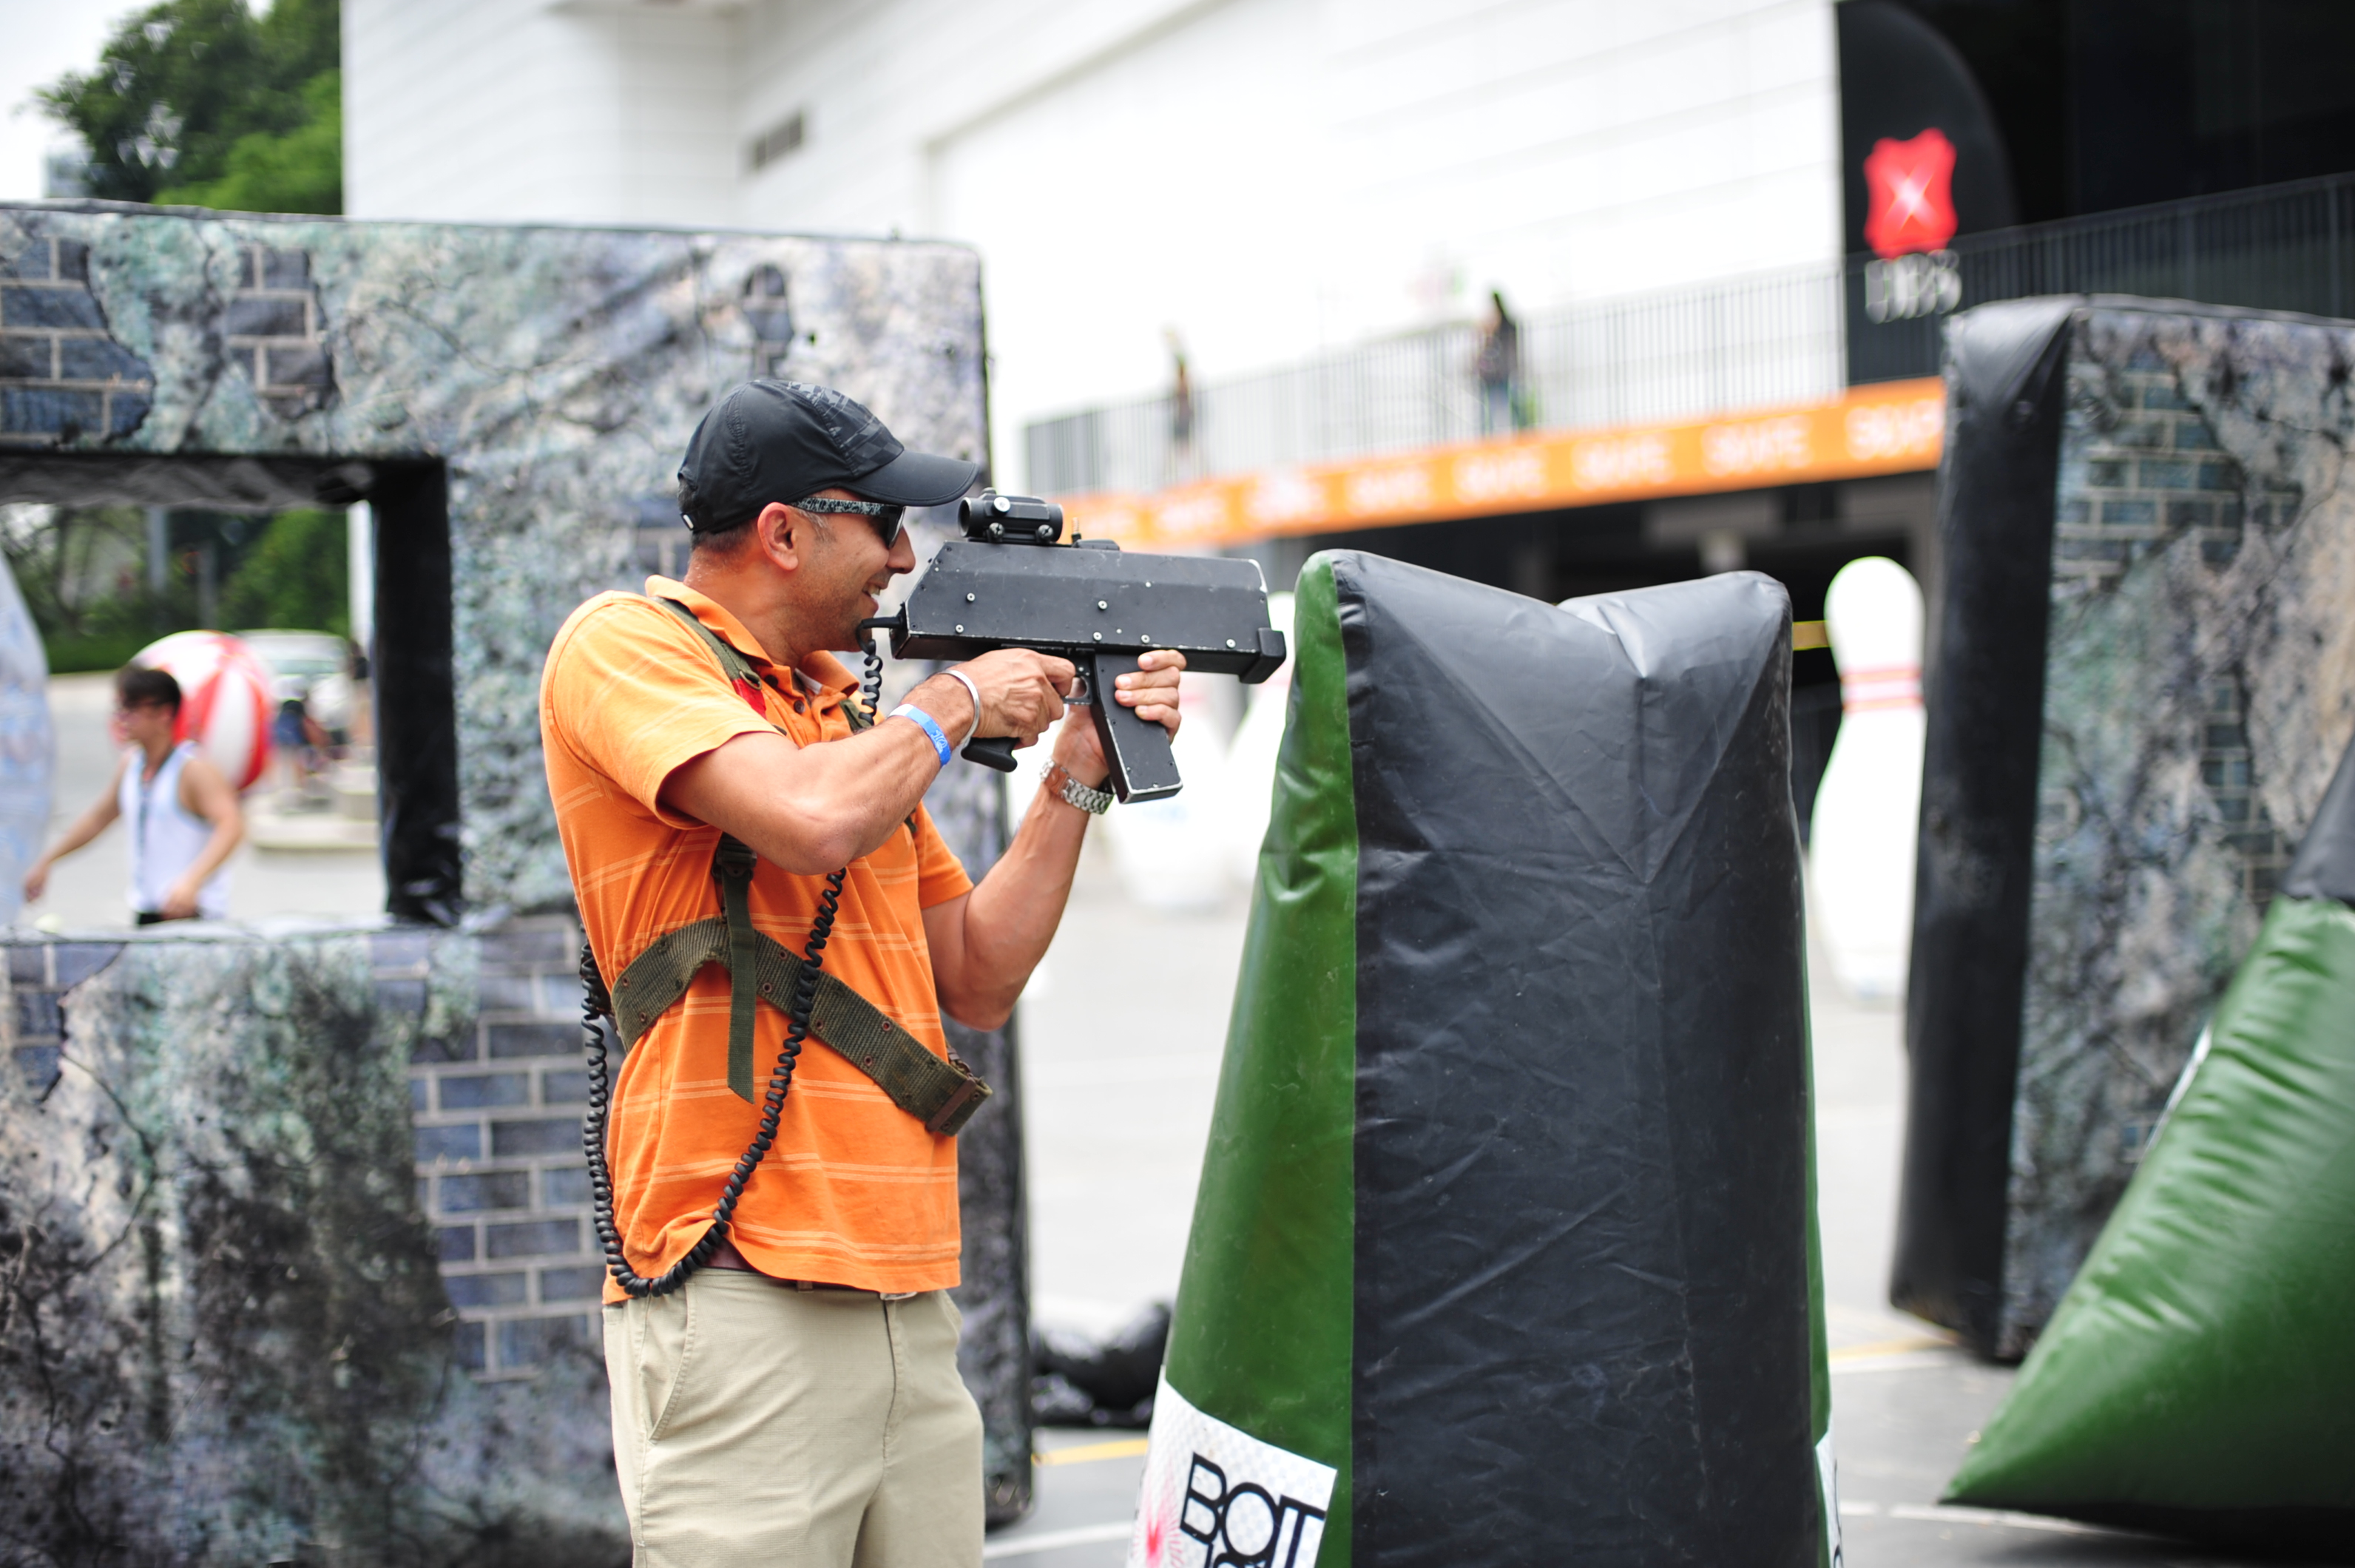 laser tag fun for events and party ideas in singapore